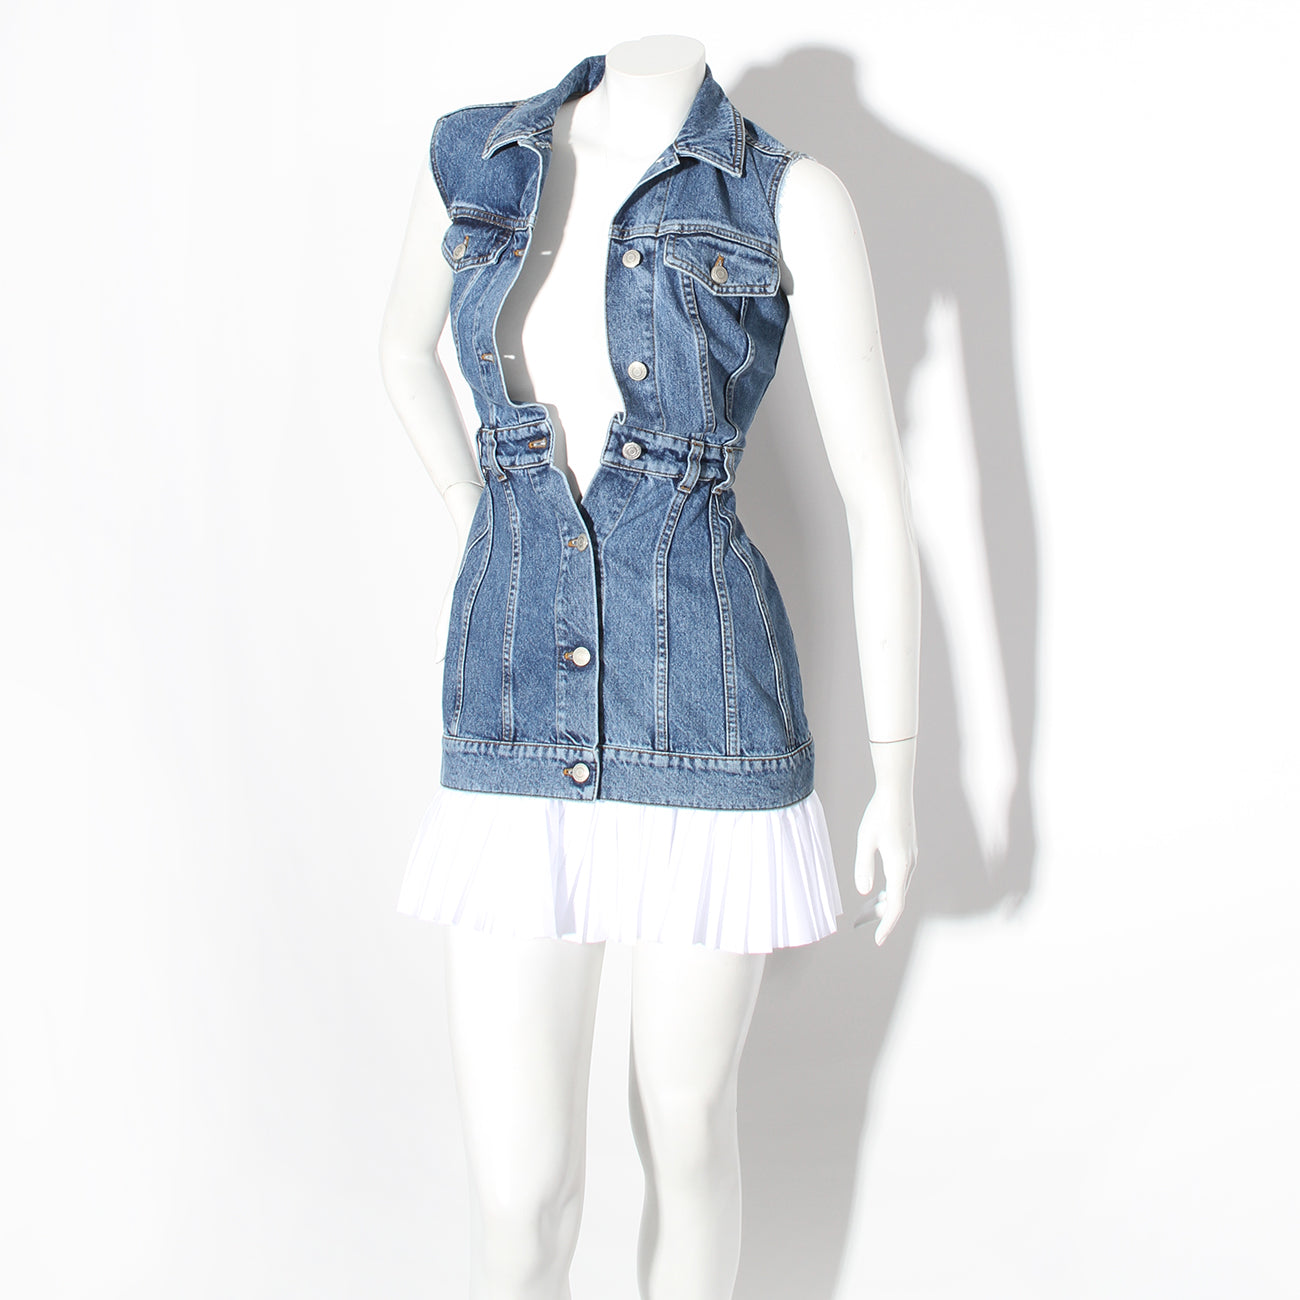 McQueen Denim Dress with White Trim